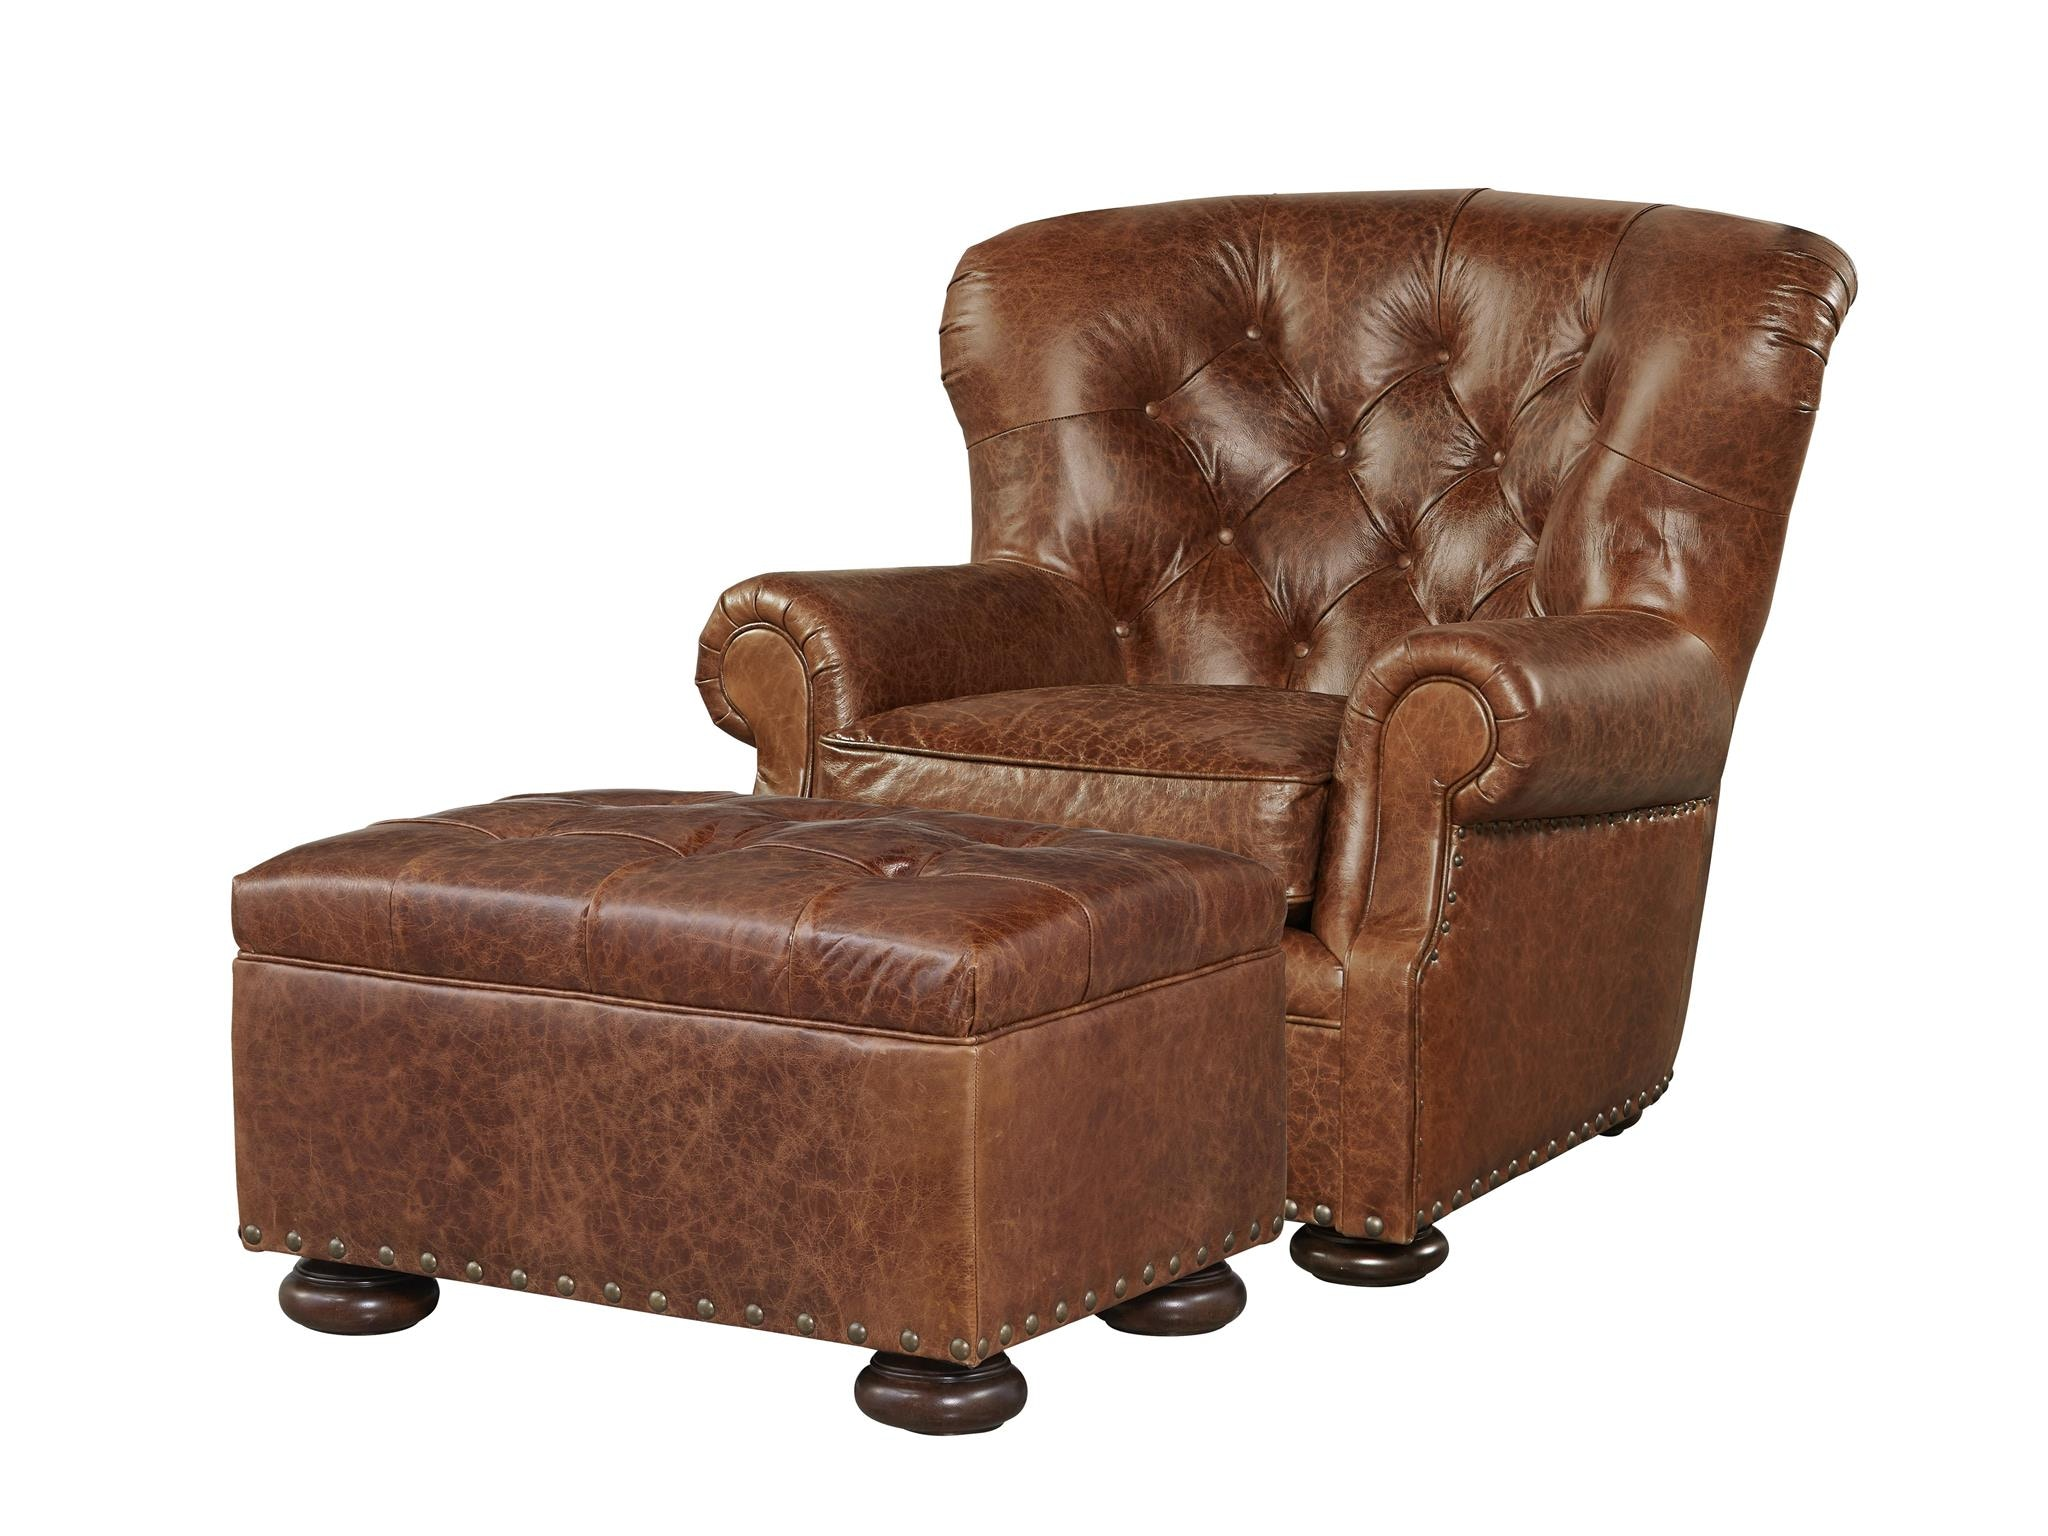 Universal Furniture Maxwell Chair 437503 500